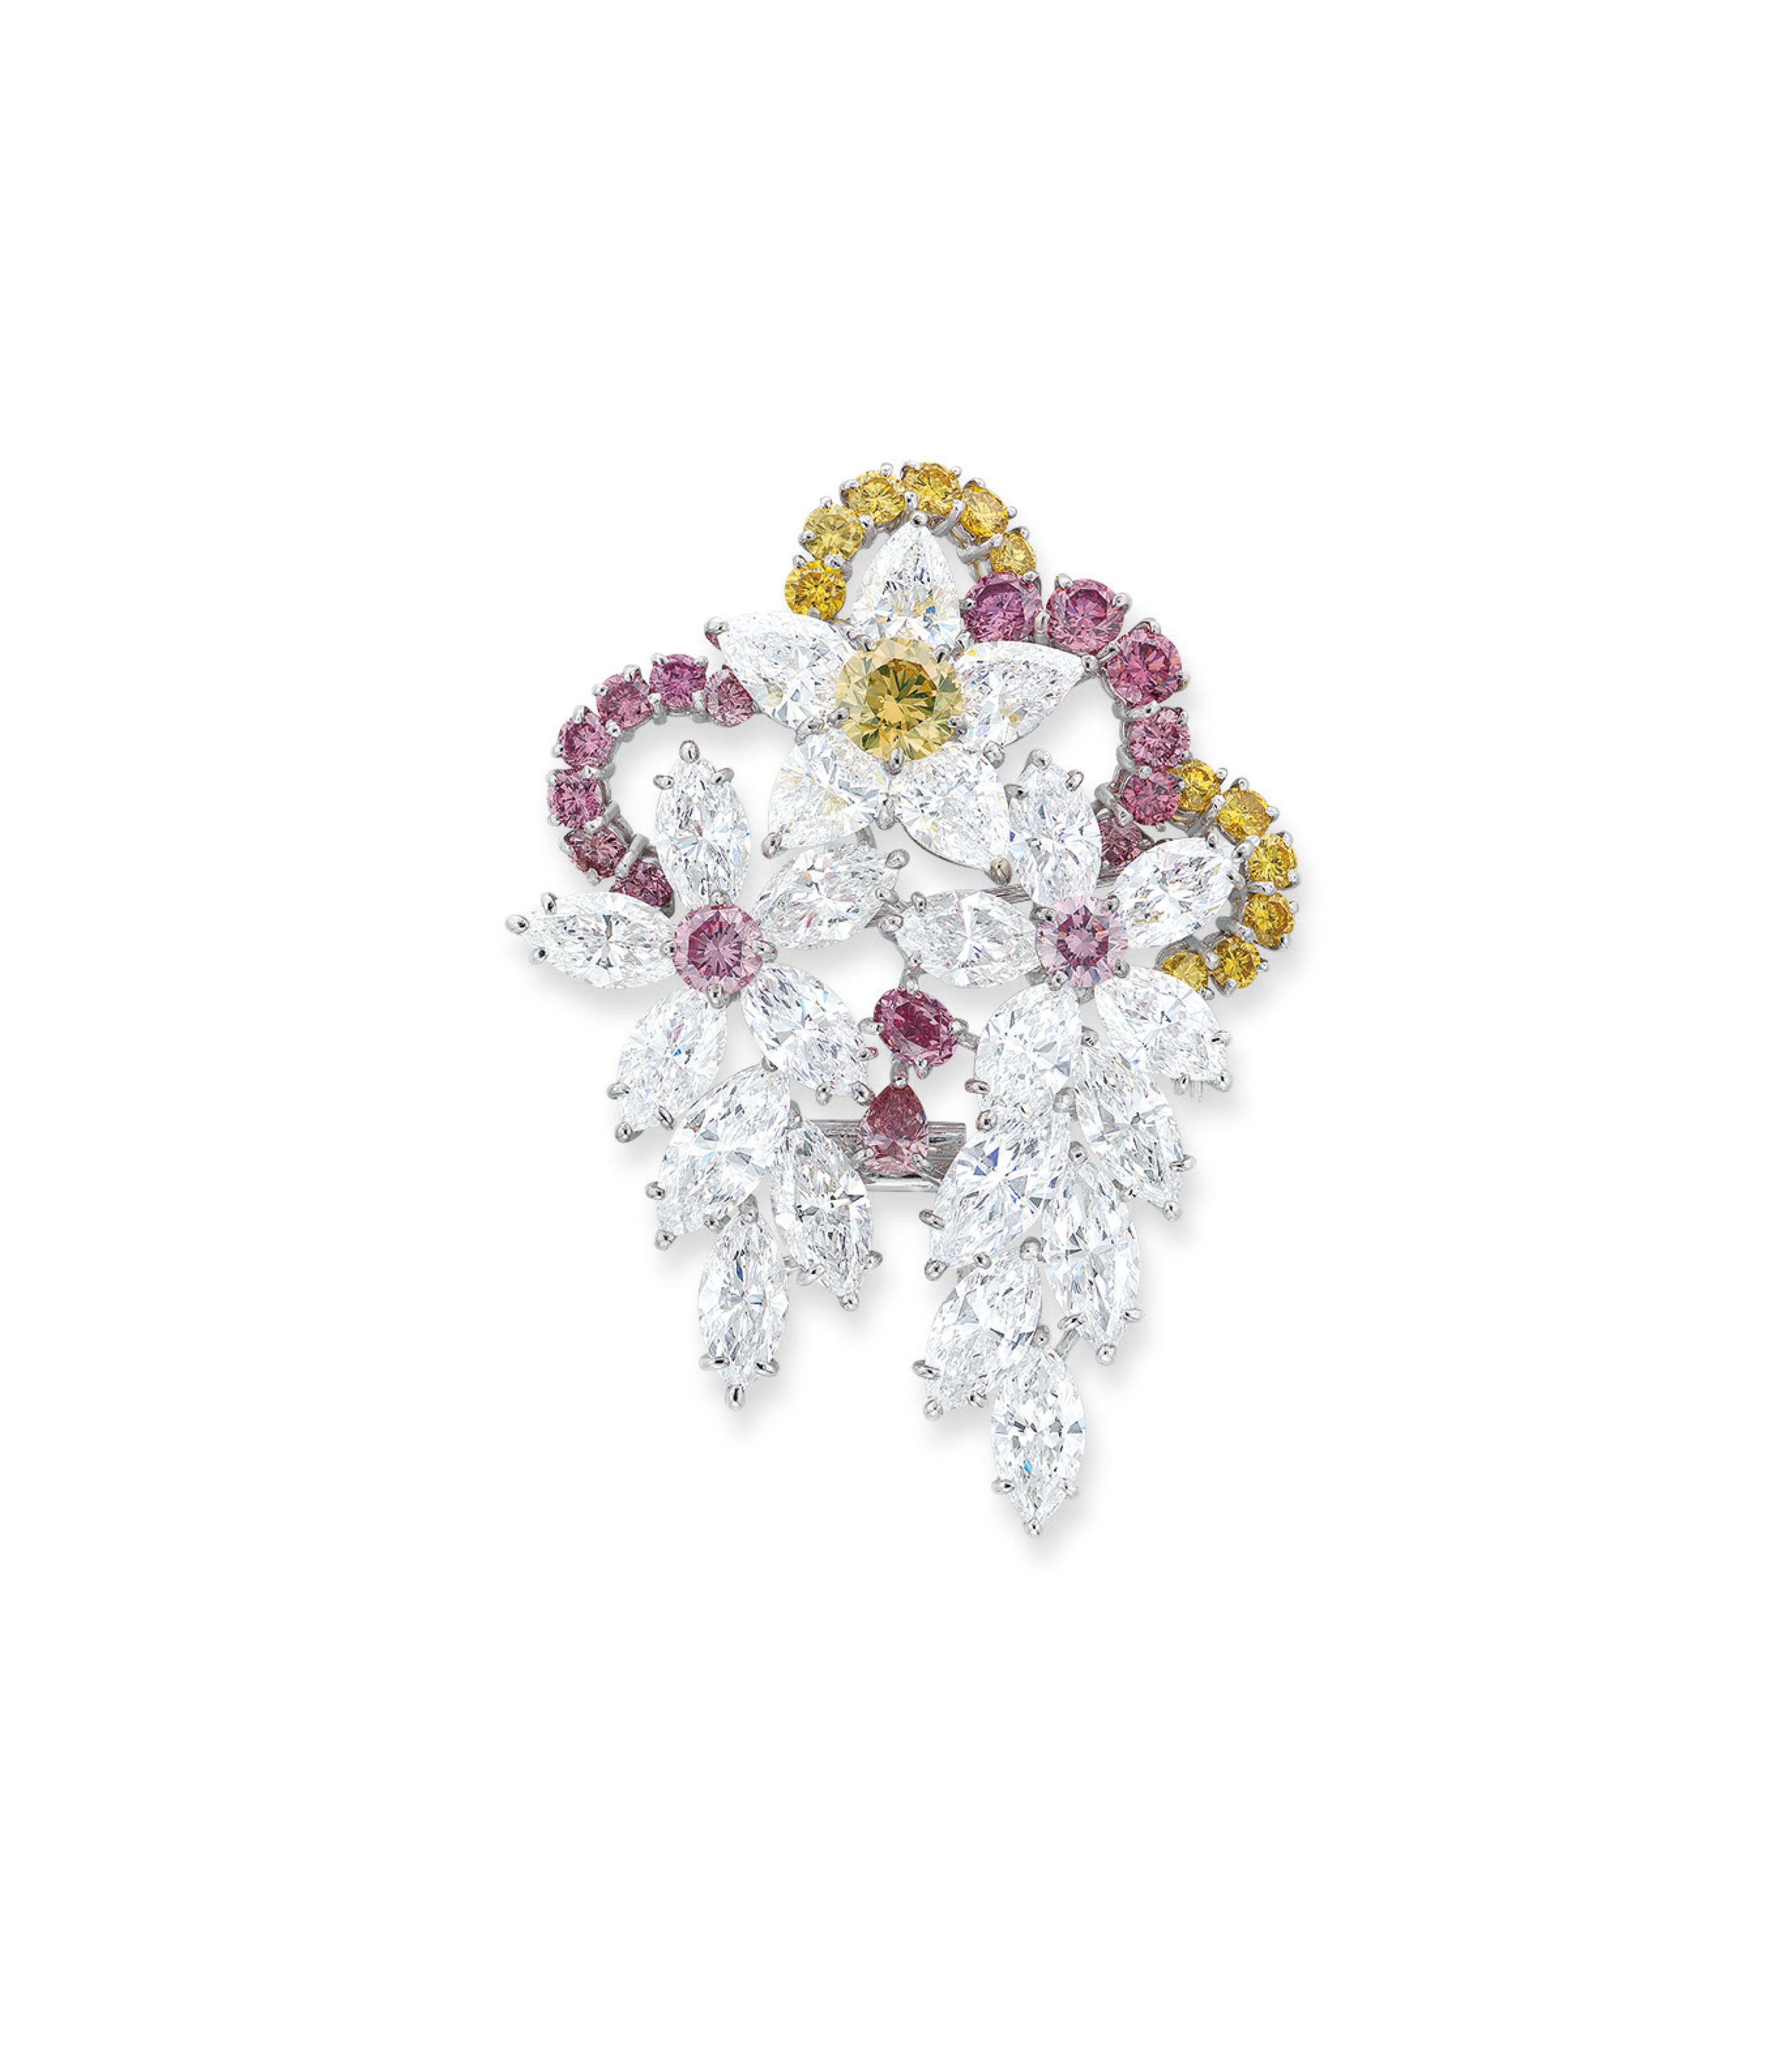 AN IMPORTANT COLOURED DIAMOND AND DIAMOND BROOCH/PENDANT